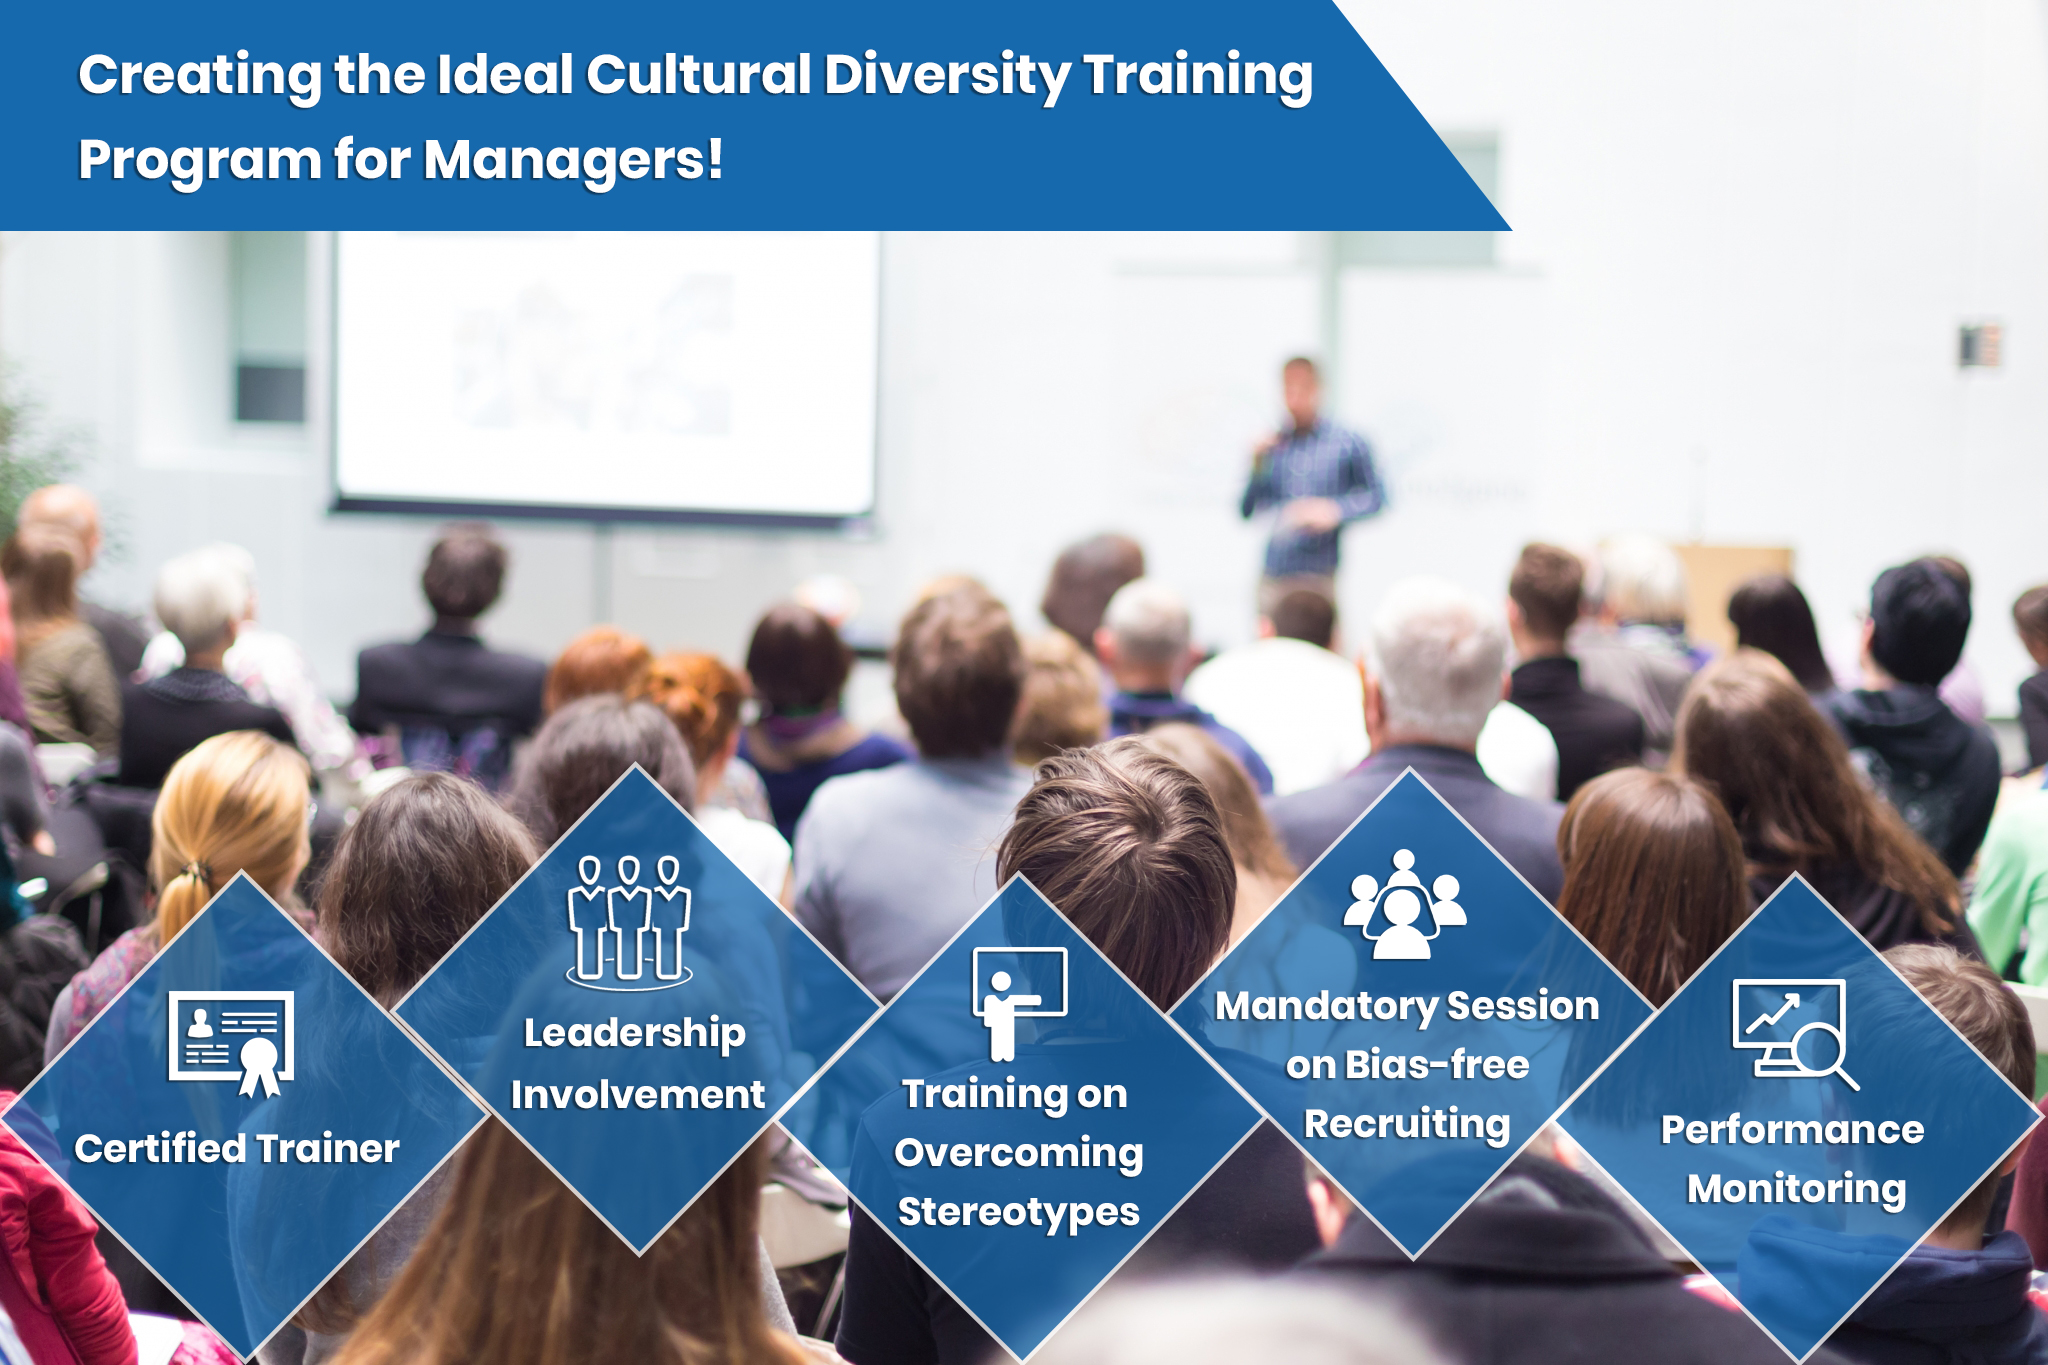 Slide for training managers to increase diversity in the workplace